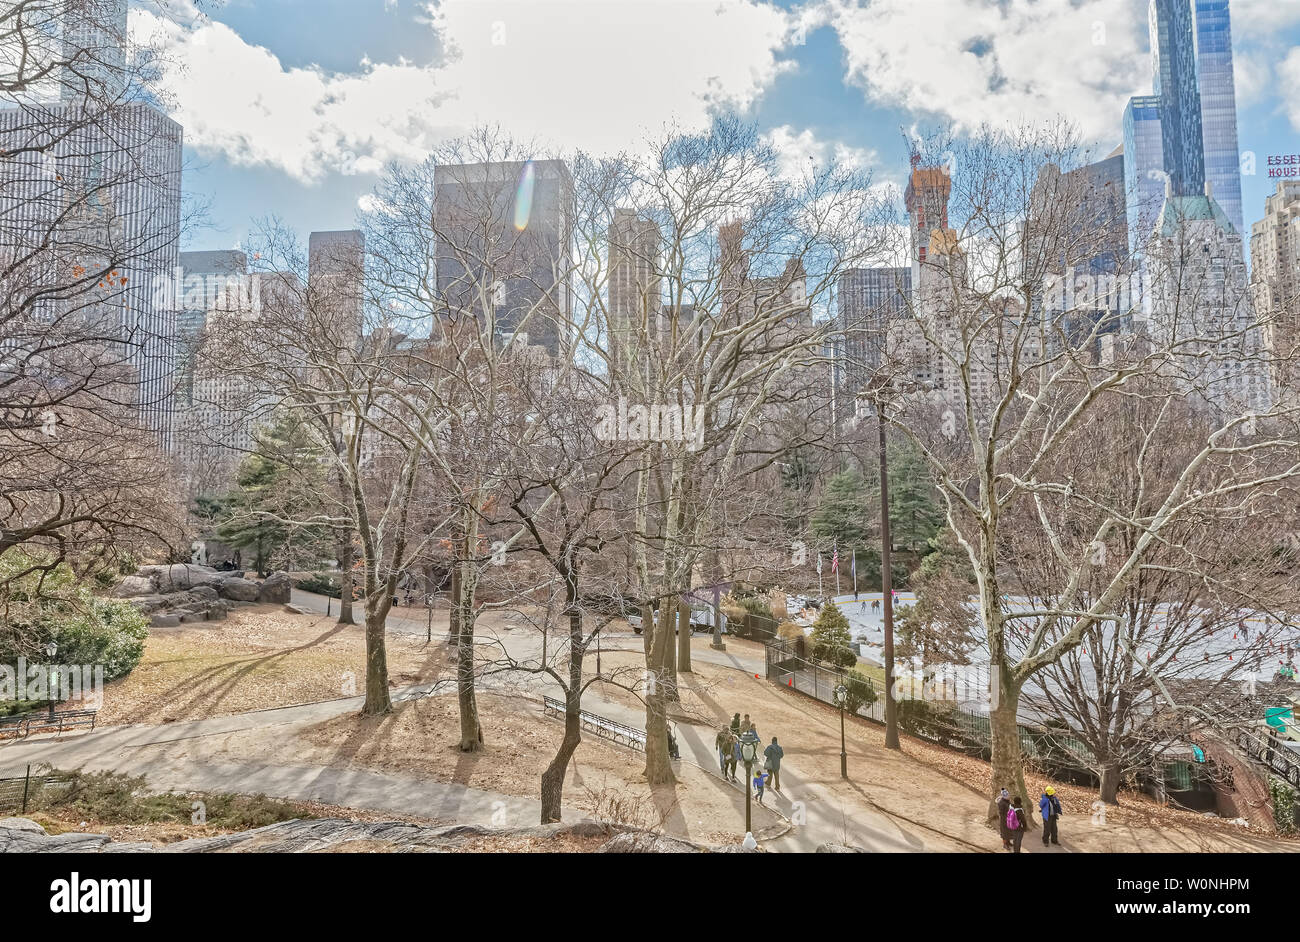 NEW YORK, USA - JANUARY 15, 2018: City view from the Central Park in winter season. - Stock Image